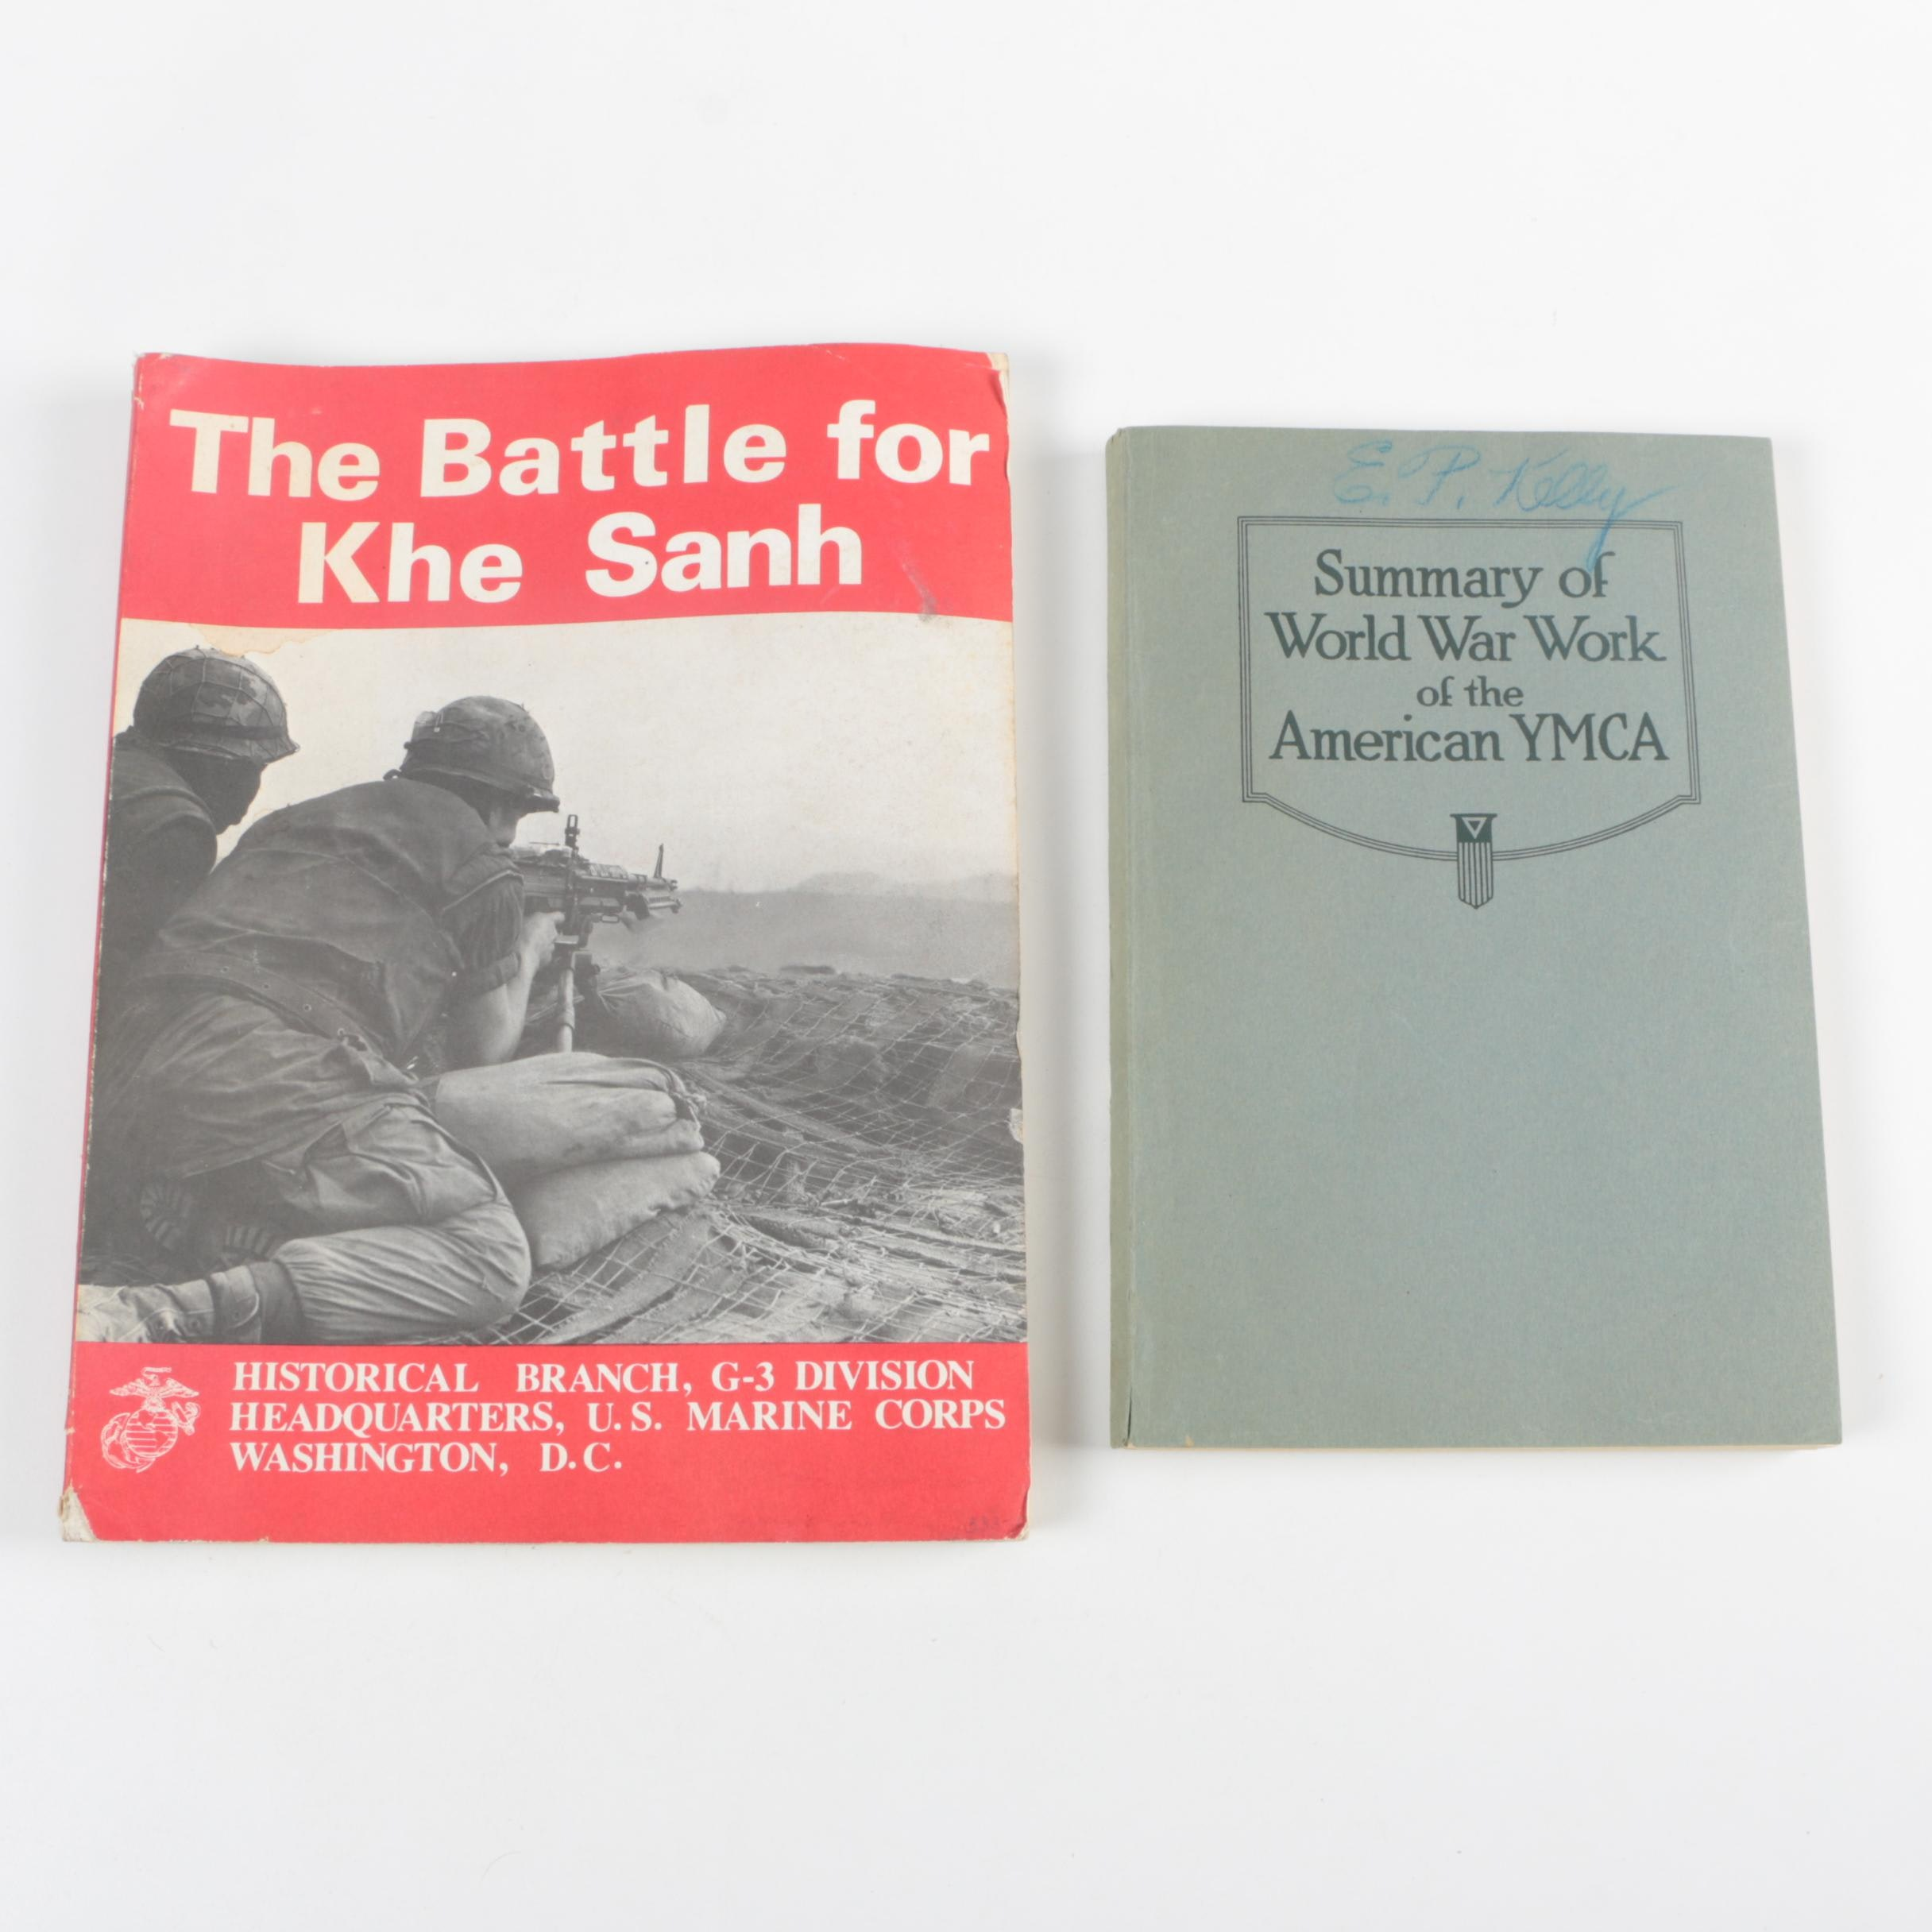 """1969 """"The Battle for Khe Sanh"""" and 1920 """"Summary of World War Work of the YMCA"""""""